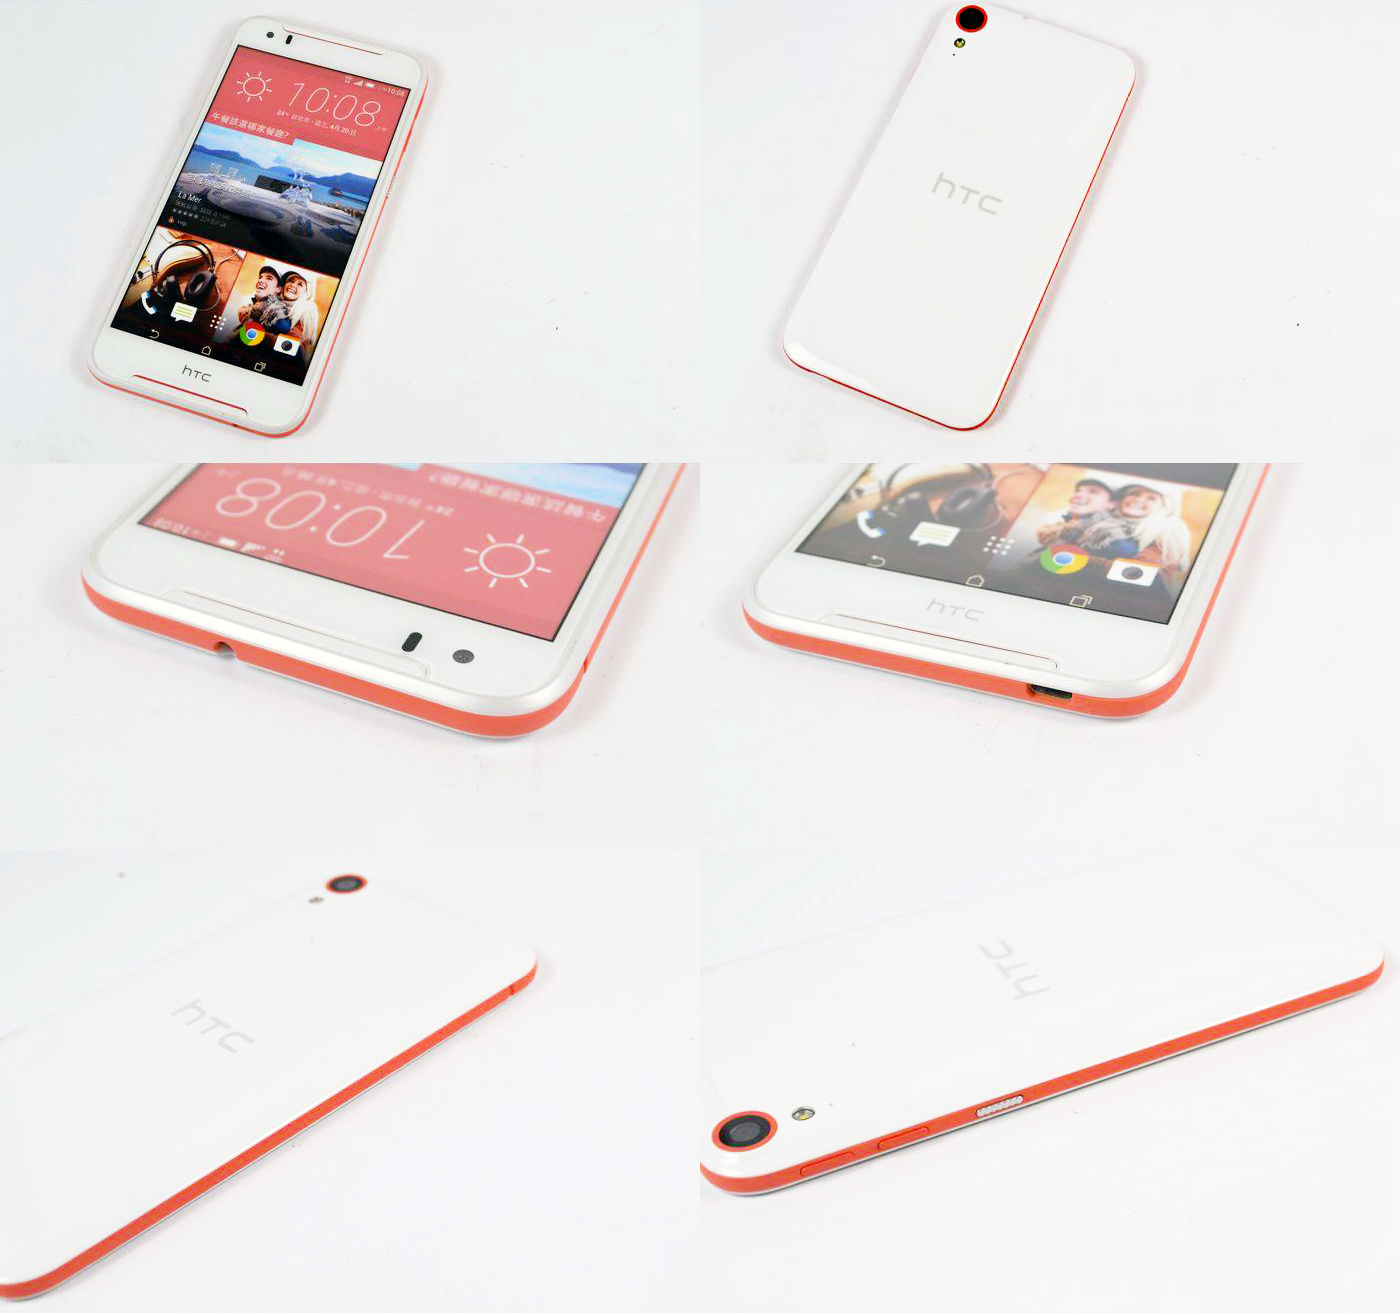 Leaked-images-of-the-HTC-Desire-830 (5)